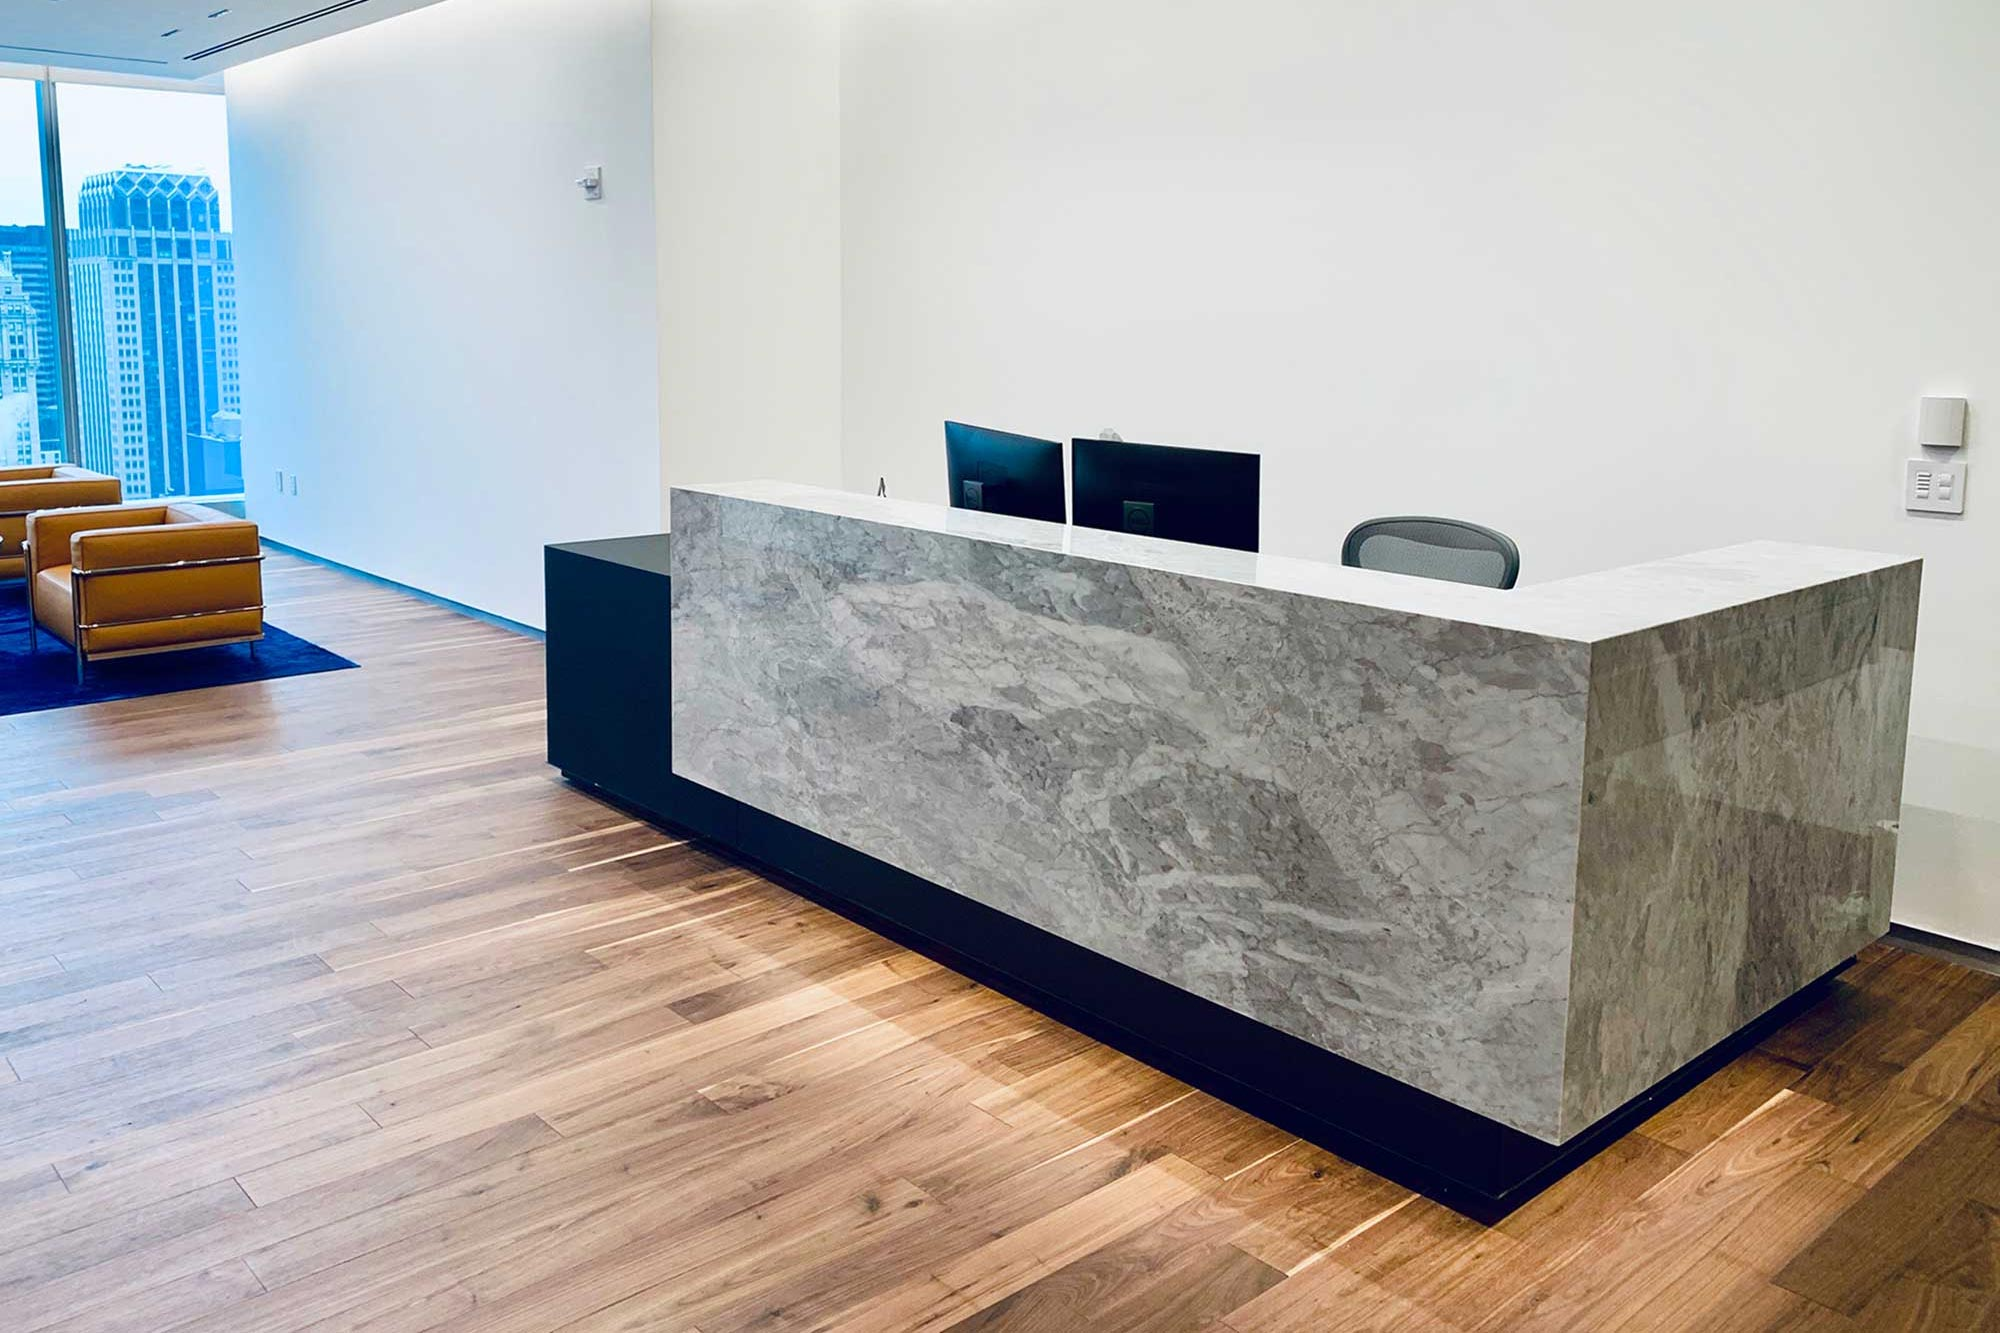 Stone Kubist reception desk